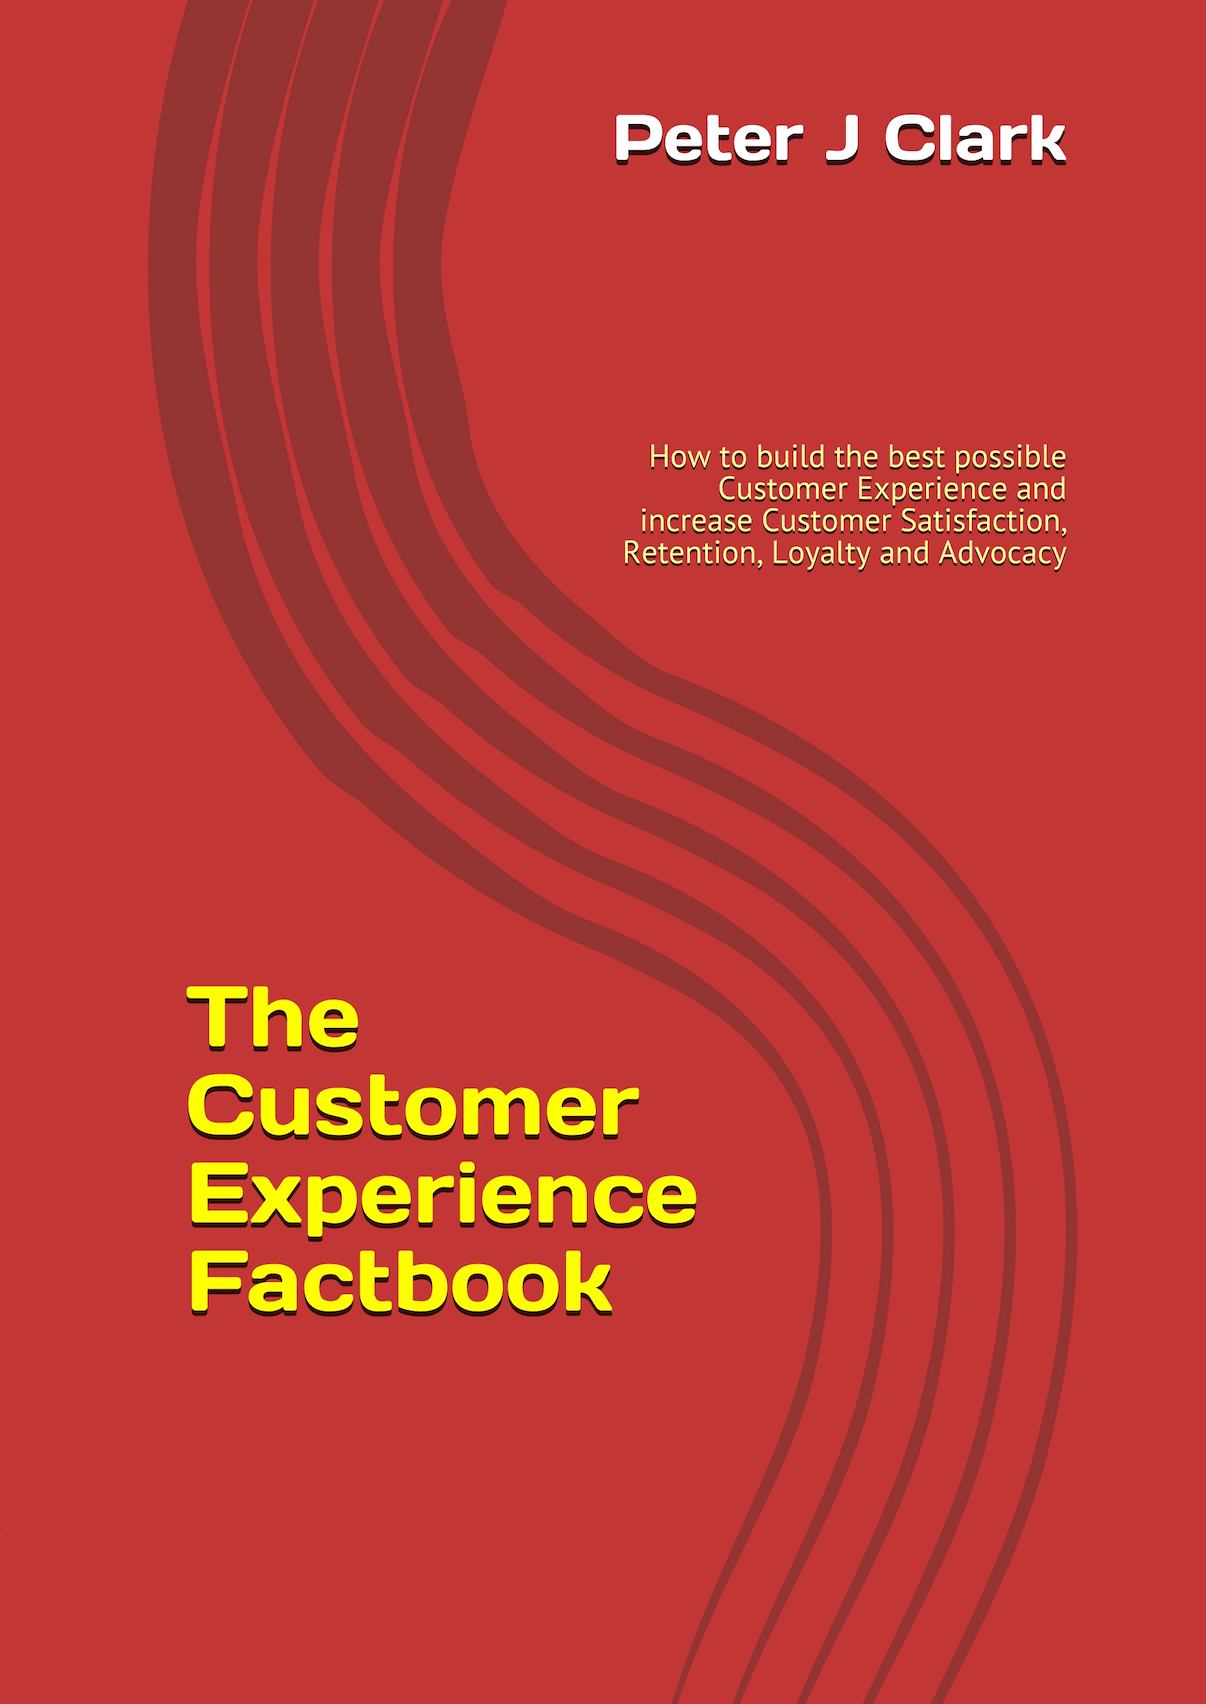 20 Ways to improve Customer Experiences for growth and profit